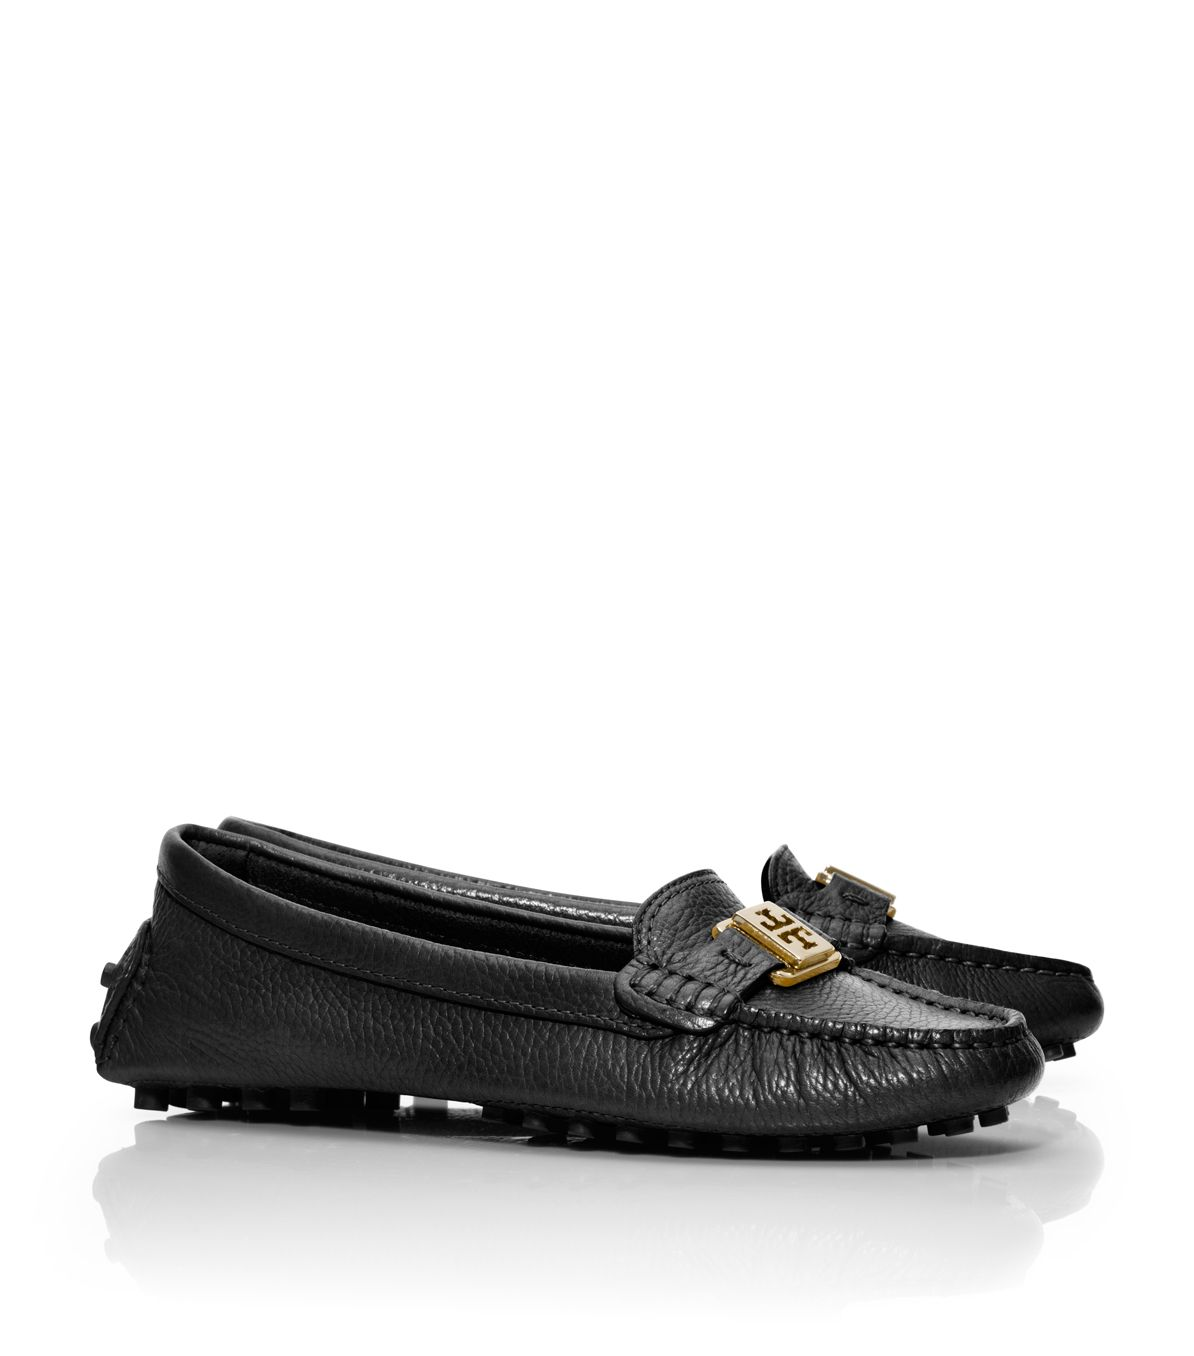 Tory Burch Women Loafers Black Fashion Shoes Hot Sale Cheapest Price Save Over 50%